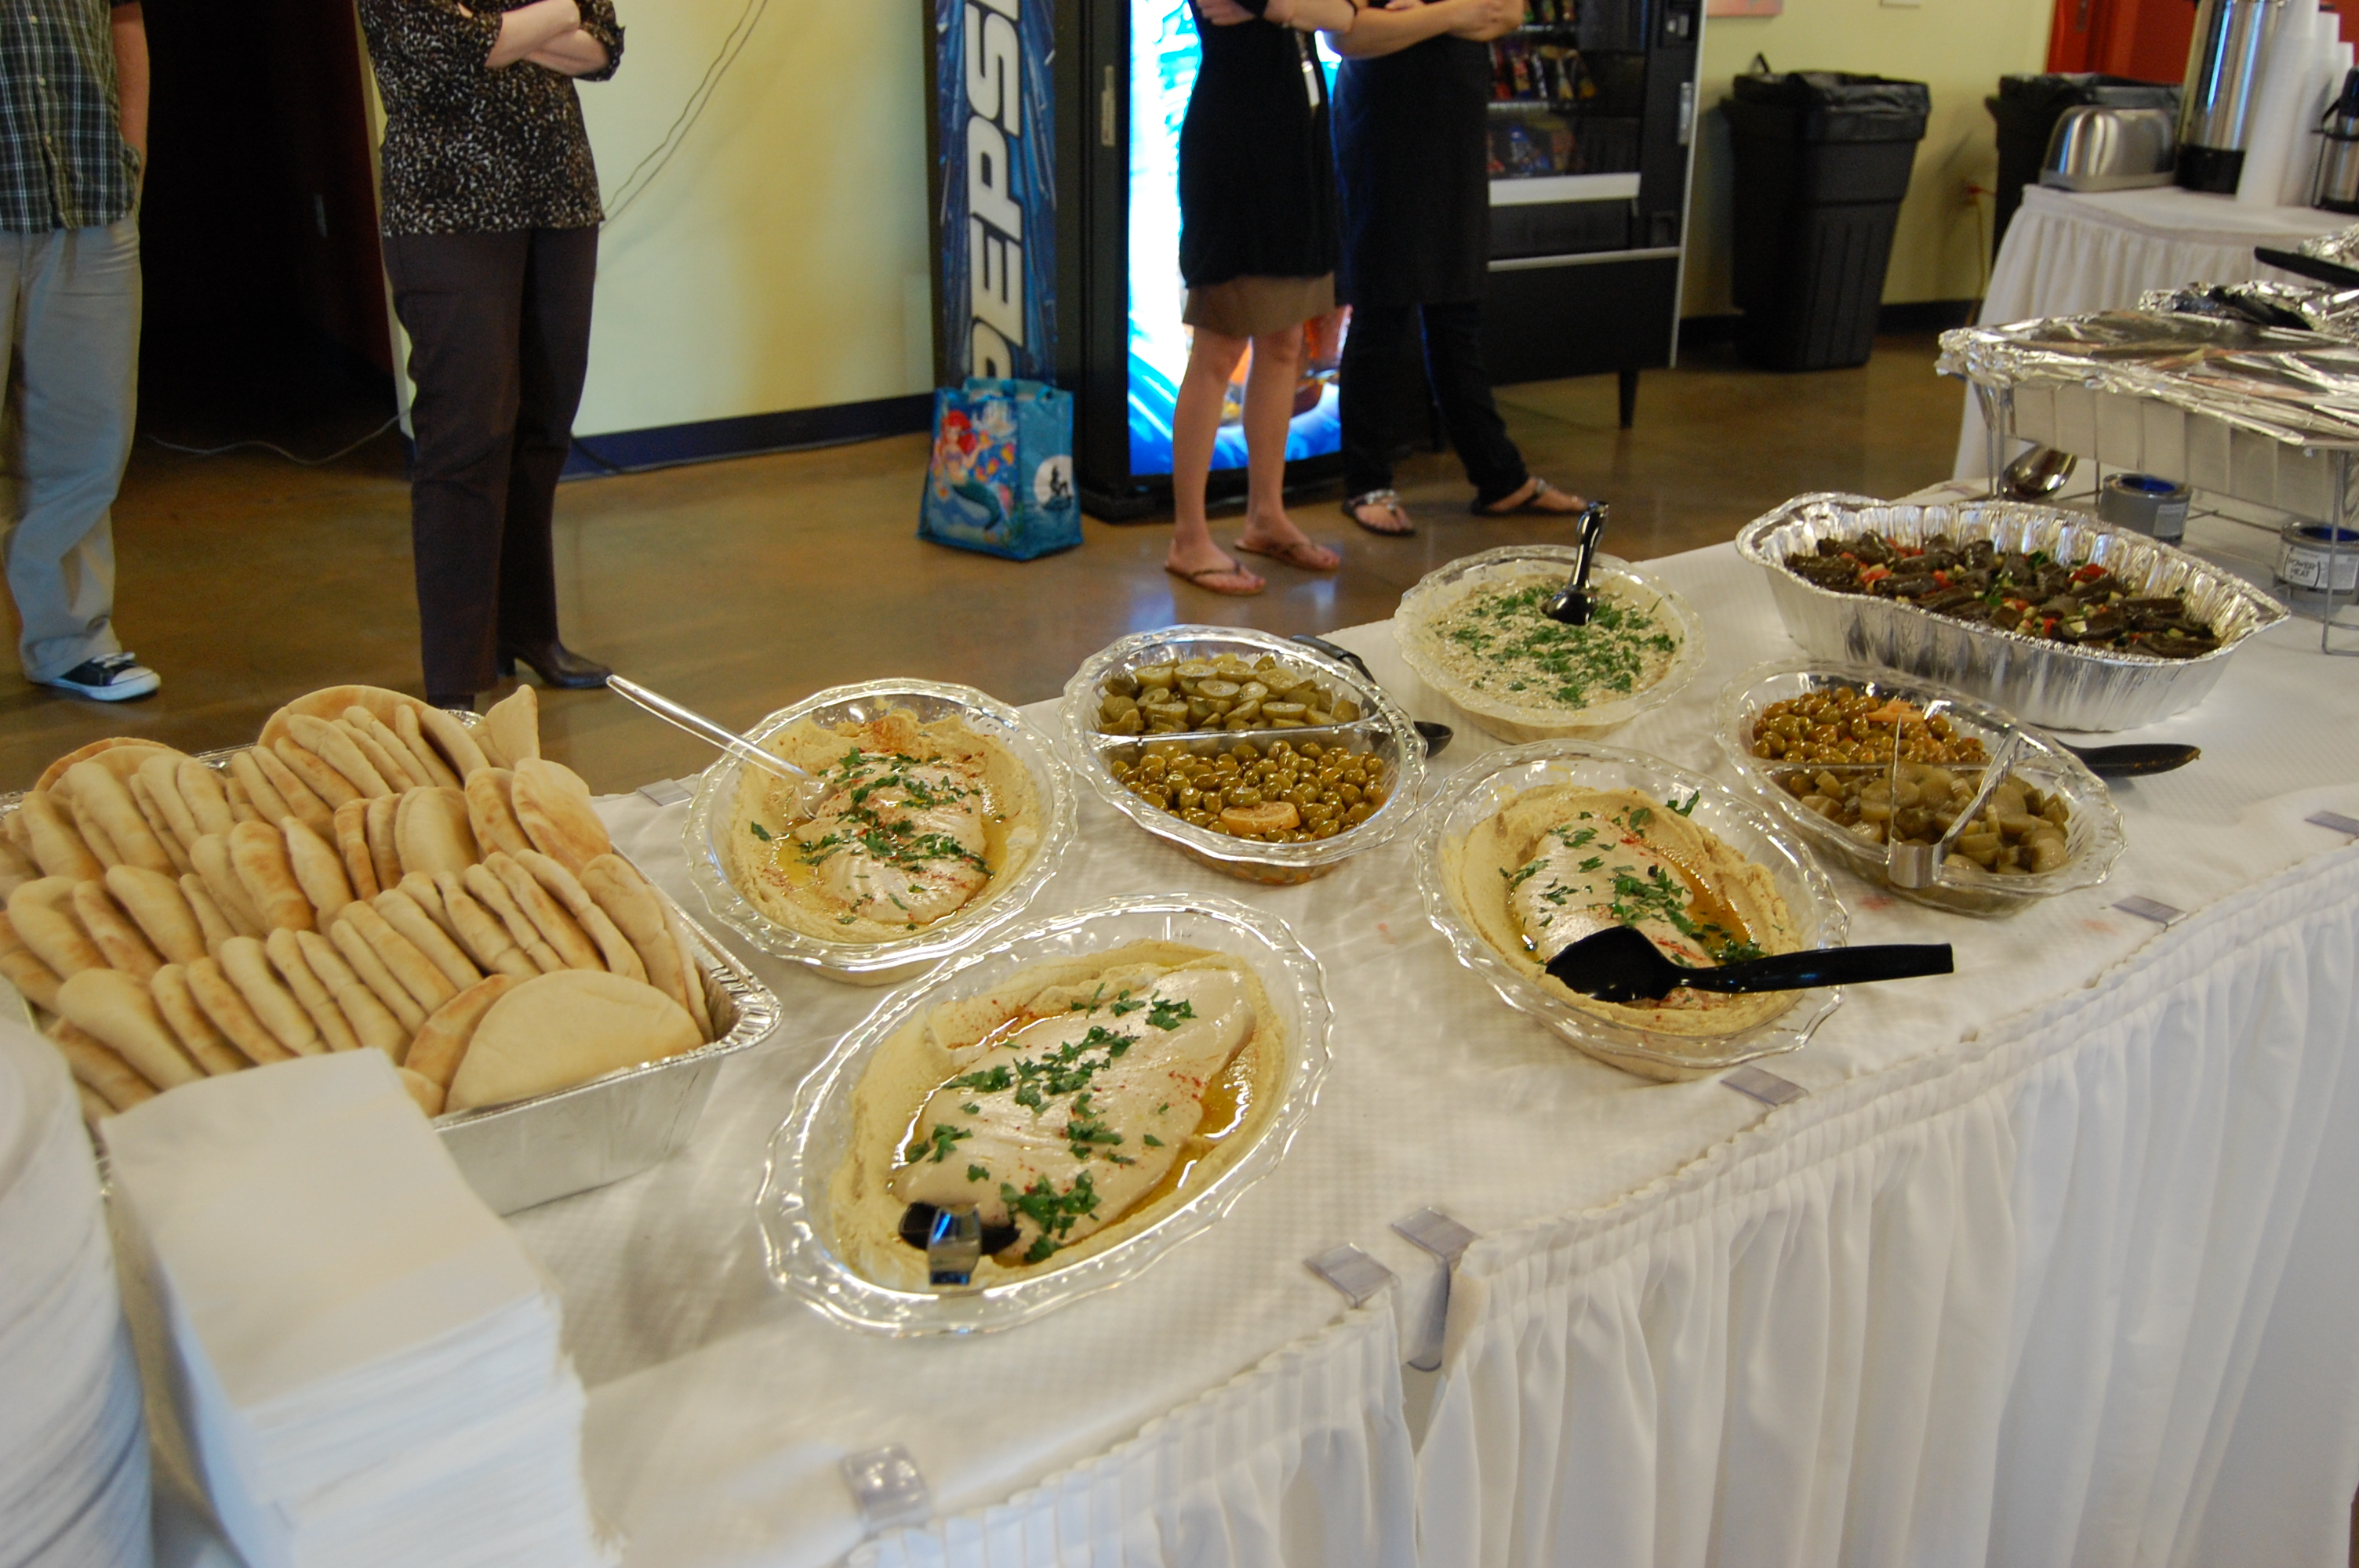 Middle Eastern Food Catering Clearwater Florida - Mana Mana